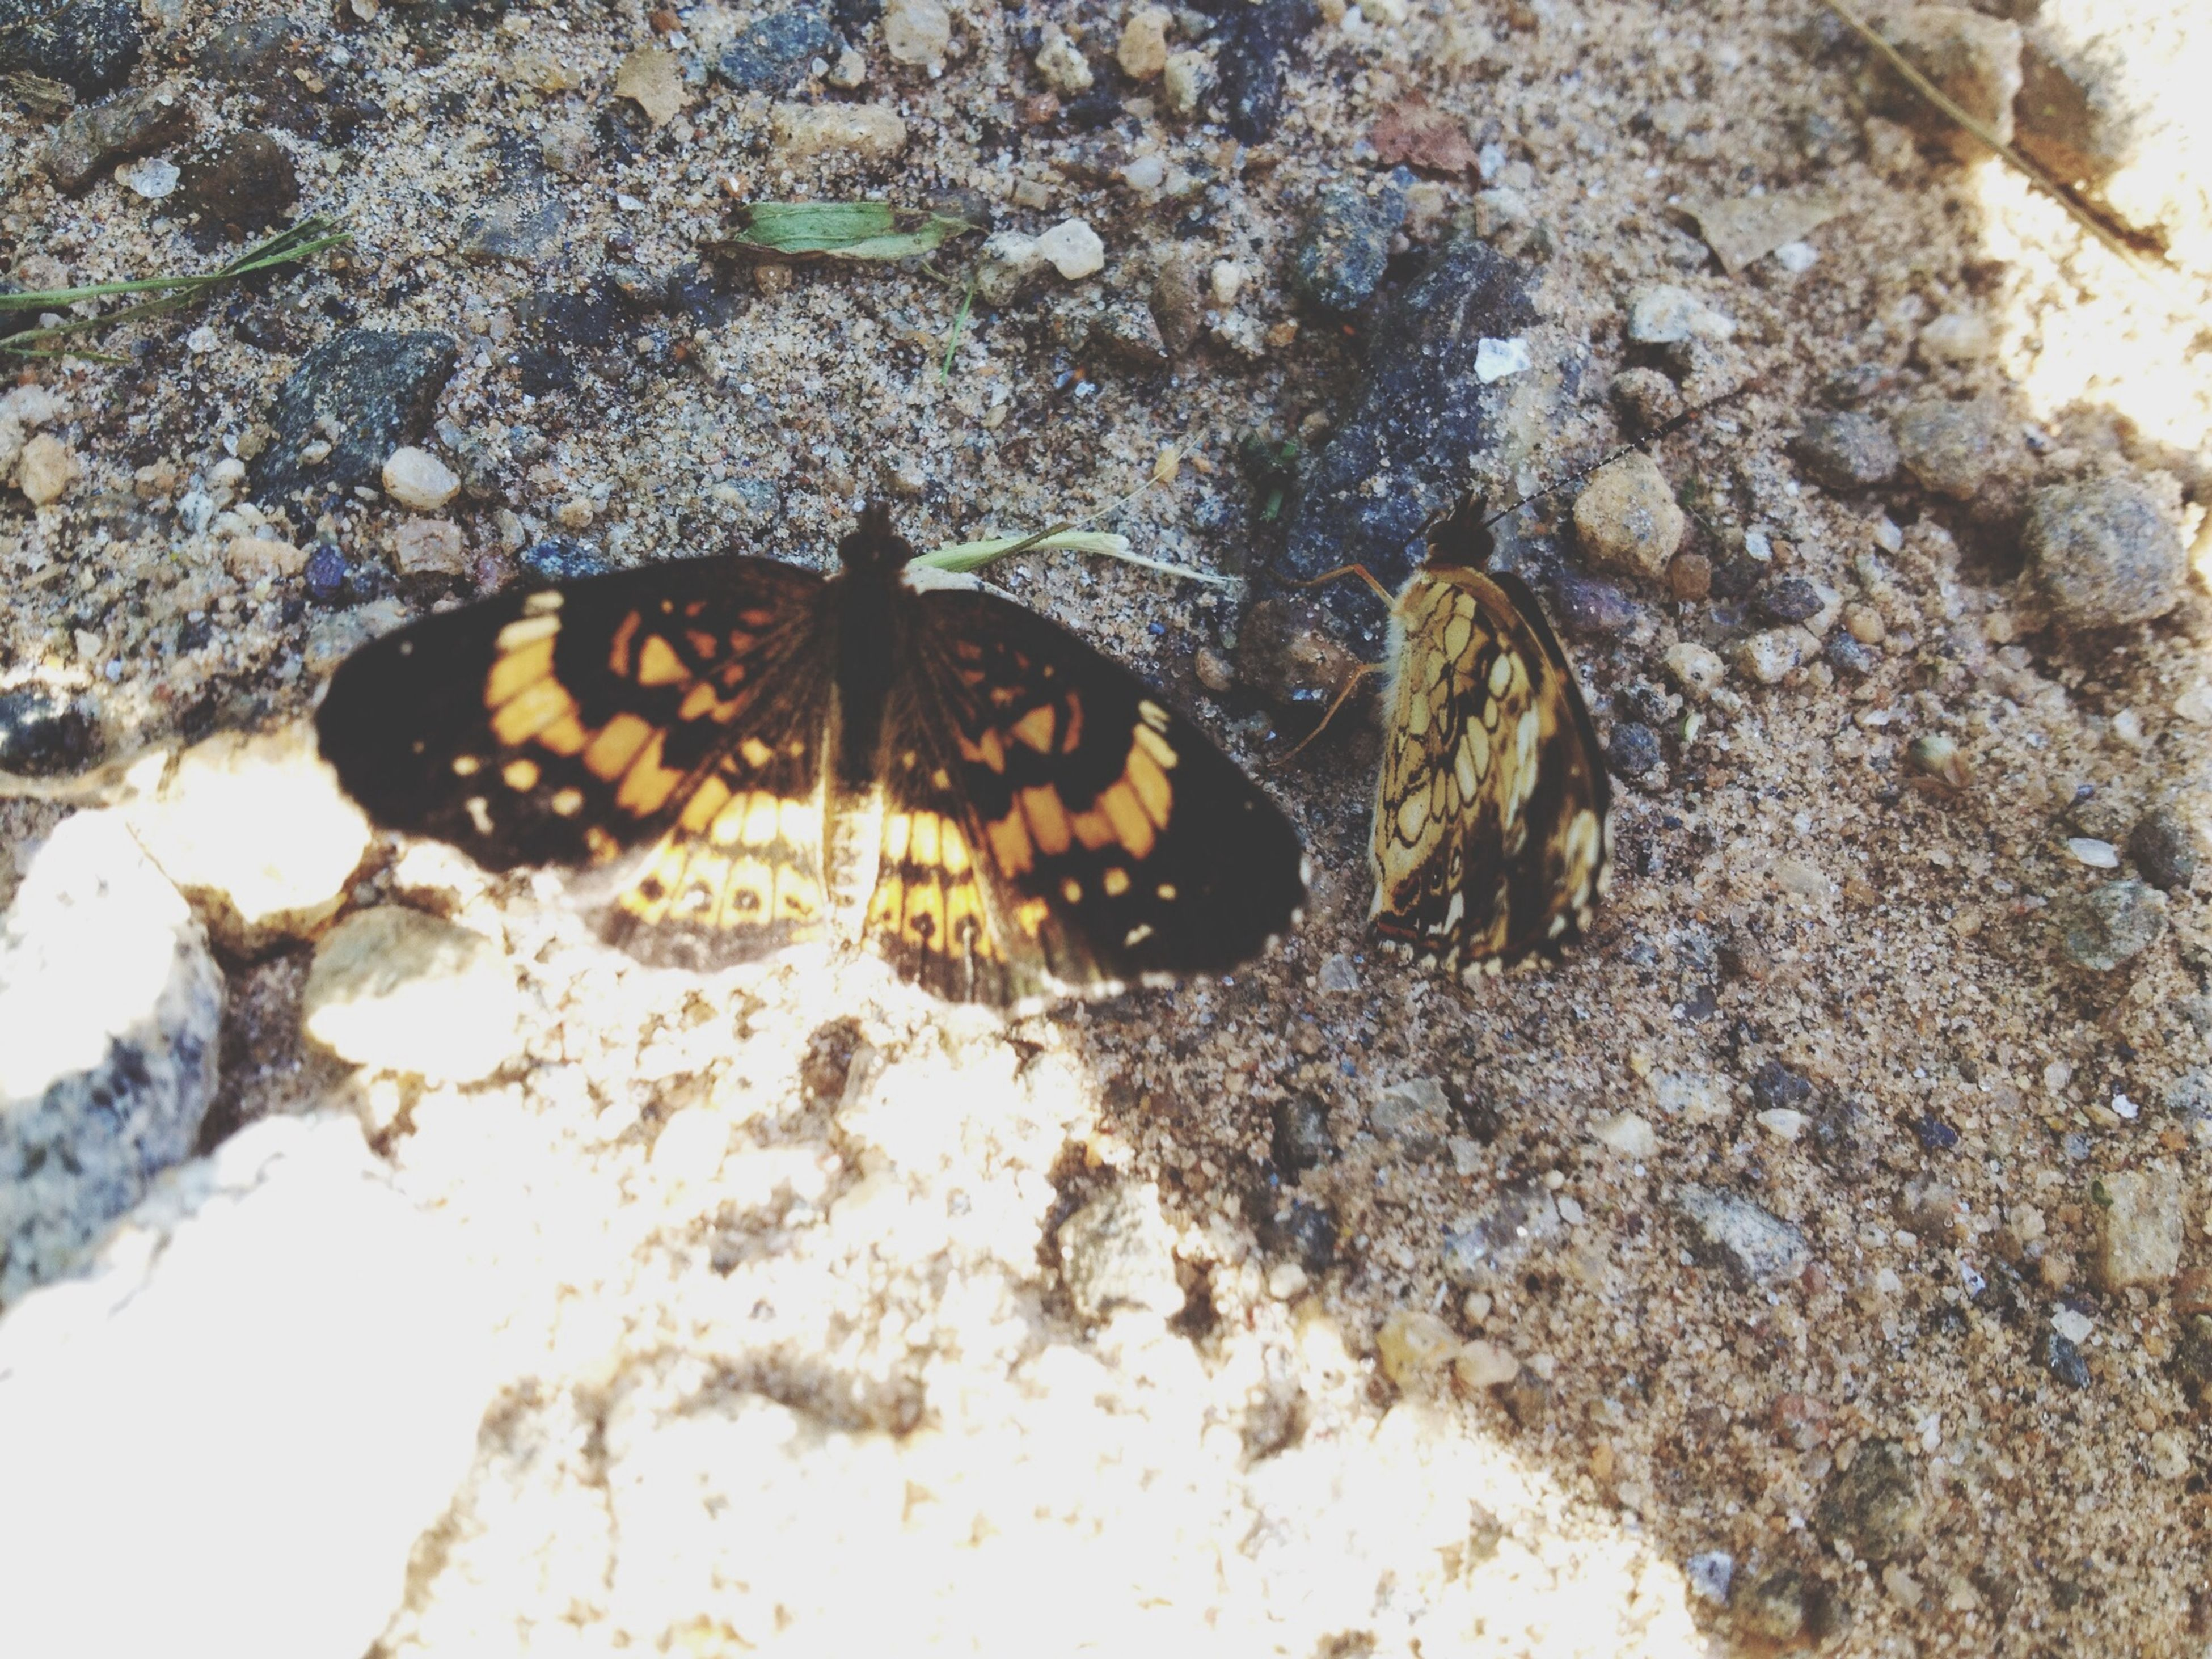 animal themes, animals in the wild, one animal, wildlife, insect, high angle view, rock - object, nature, zoology, animal markings, outdoors, close-up, day, butterfly - insect, full length, no people, two animals, selective focus, beauty in nature, natural pattern